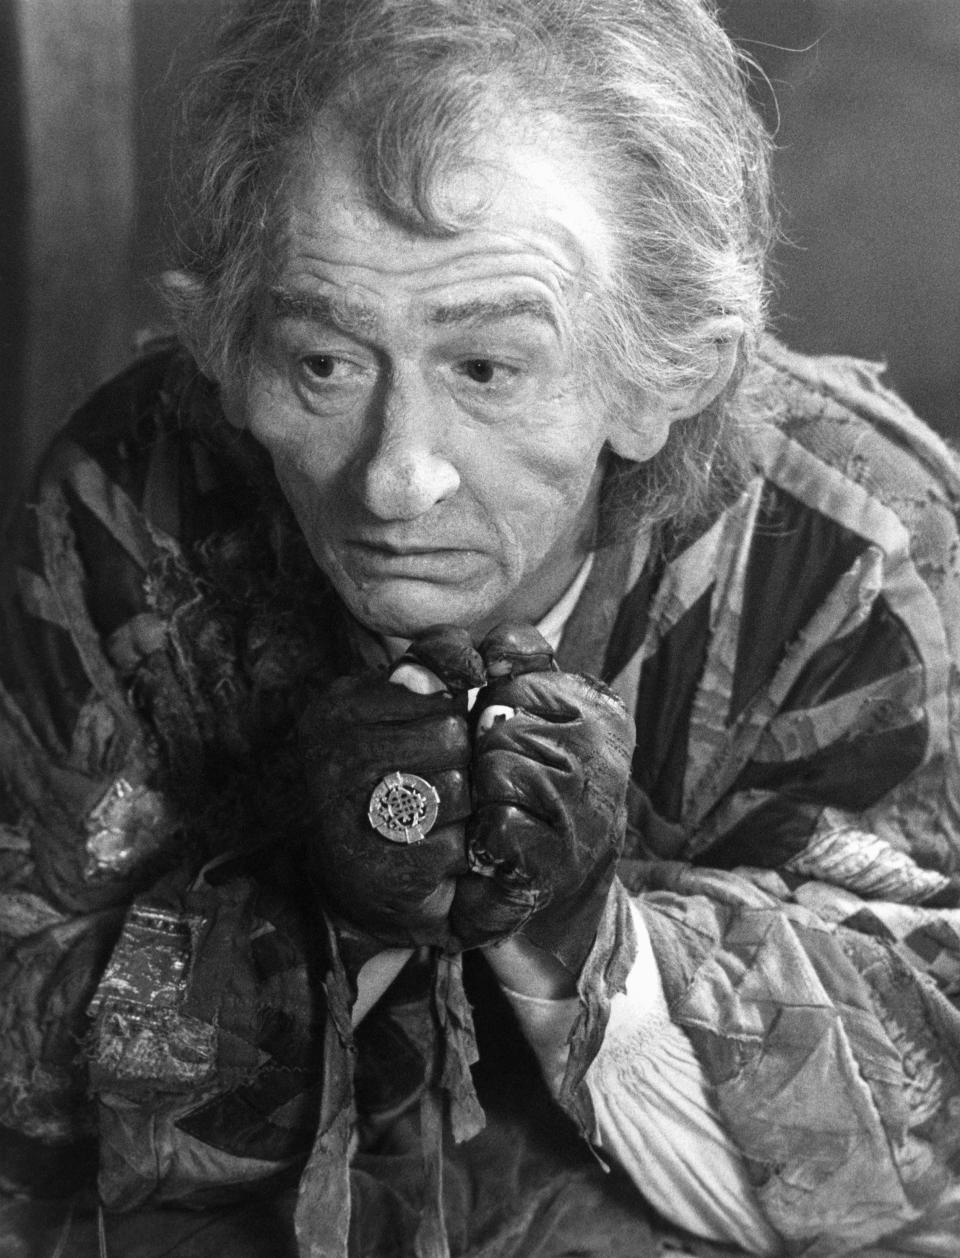 """British actor John Hurt reprises his role as the storyteller in an all-new chapter of the 1987 Emmy-winning NBC Family Special """"The Storyteller"""" Oct. 7, 1987. This edition, """"Fearnot,"""" is about a carefree young man whose total lack of fear drives him to seek out terrifying and dangerous creatures just to experience the emotion.  The drama will be telecast Monday, Oct. 26. (AP Photo)"""